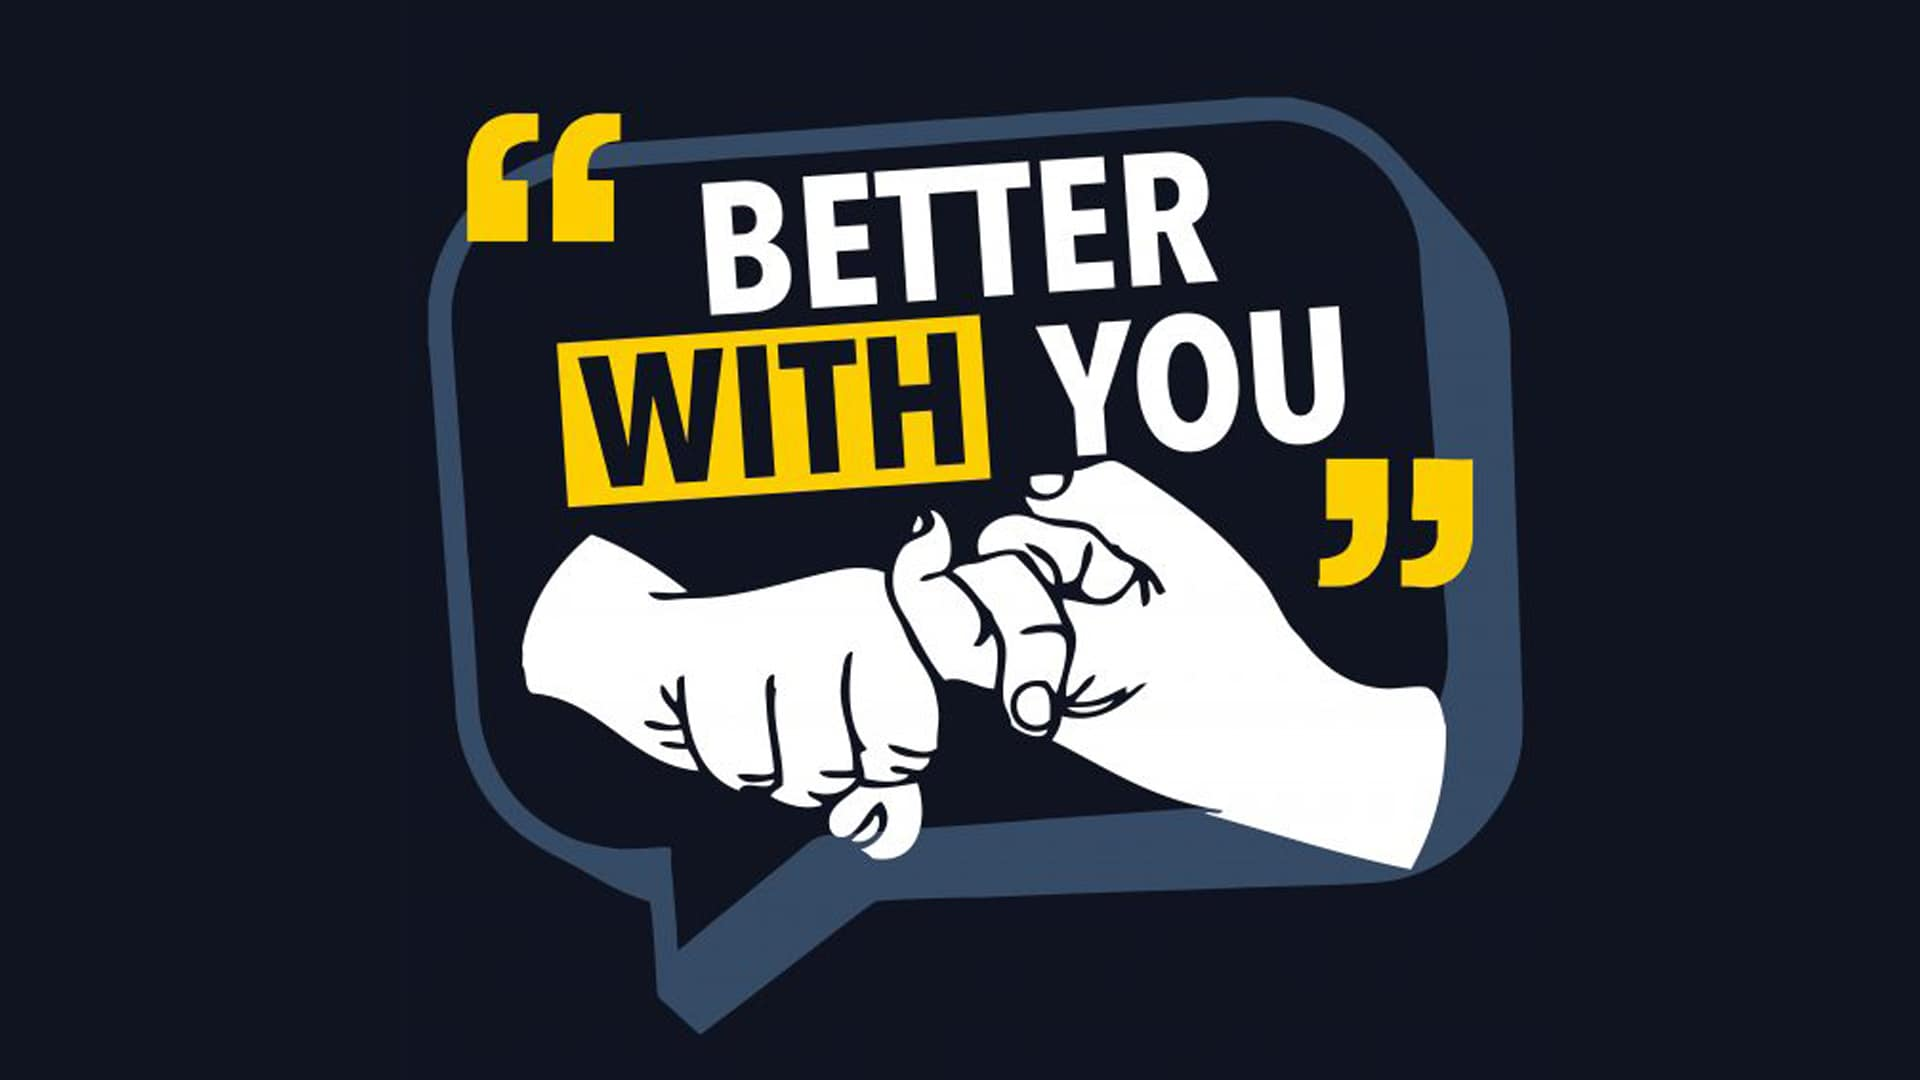 Better With You